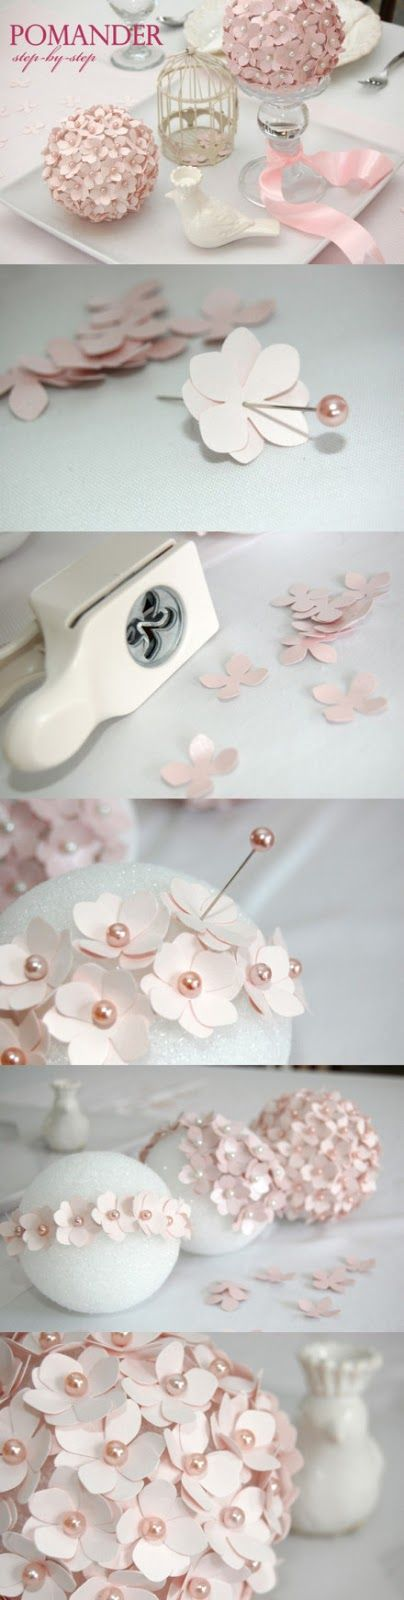 Gorgeous Pomander Decoration - Great for Wedding or Shower